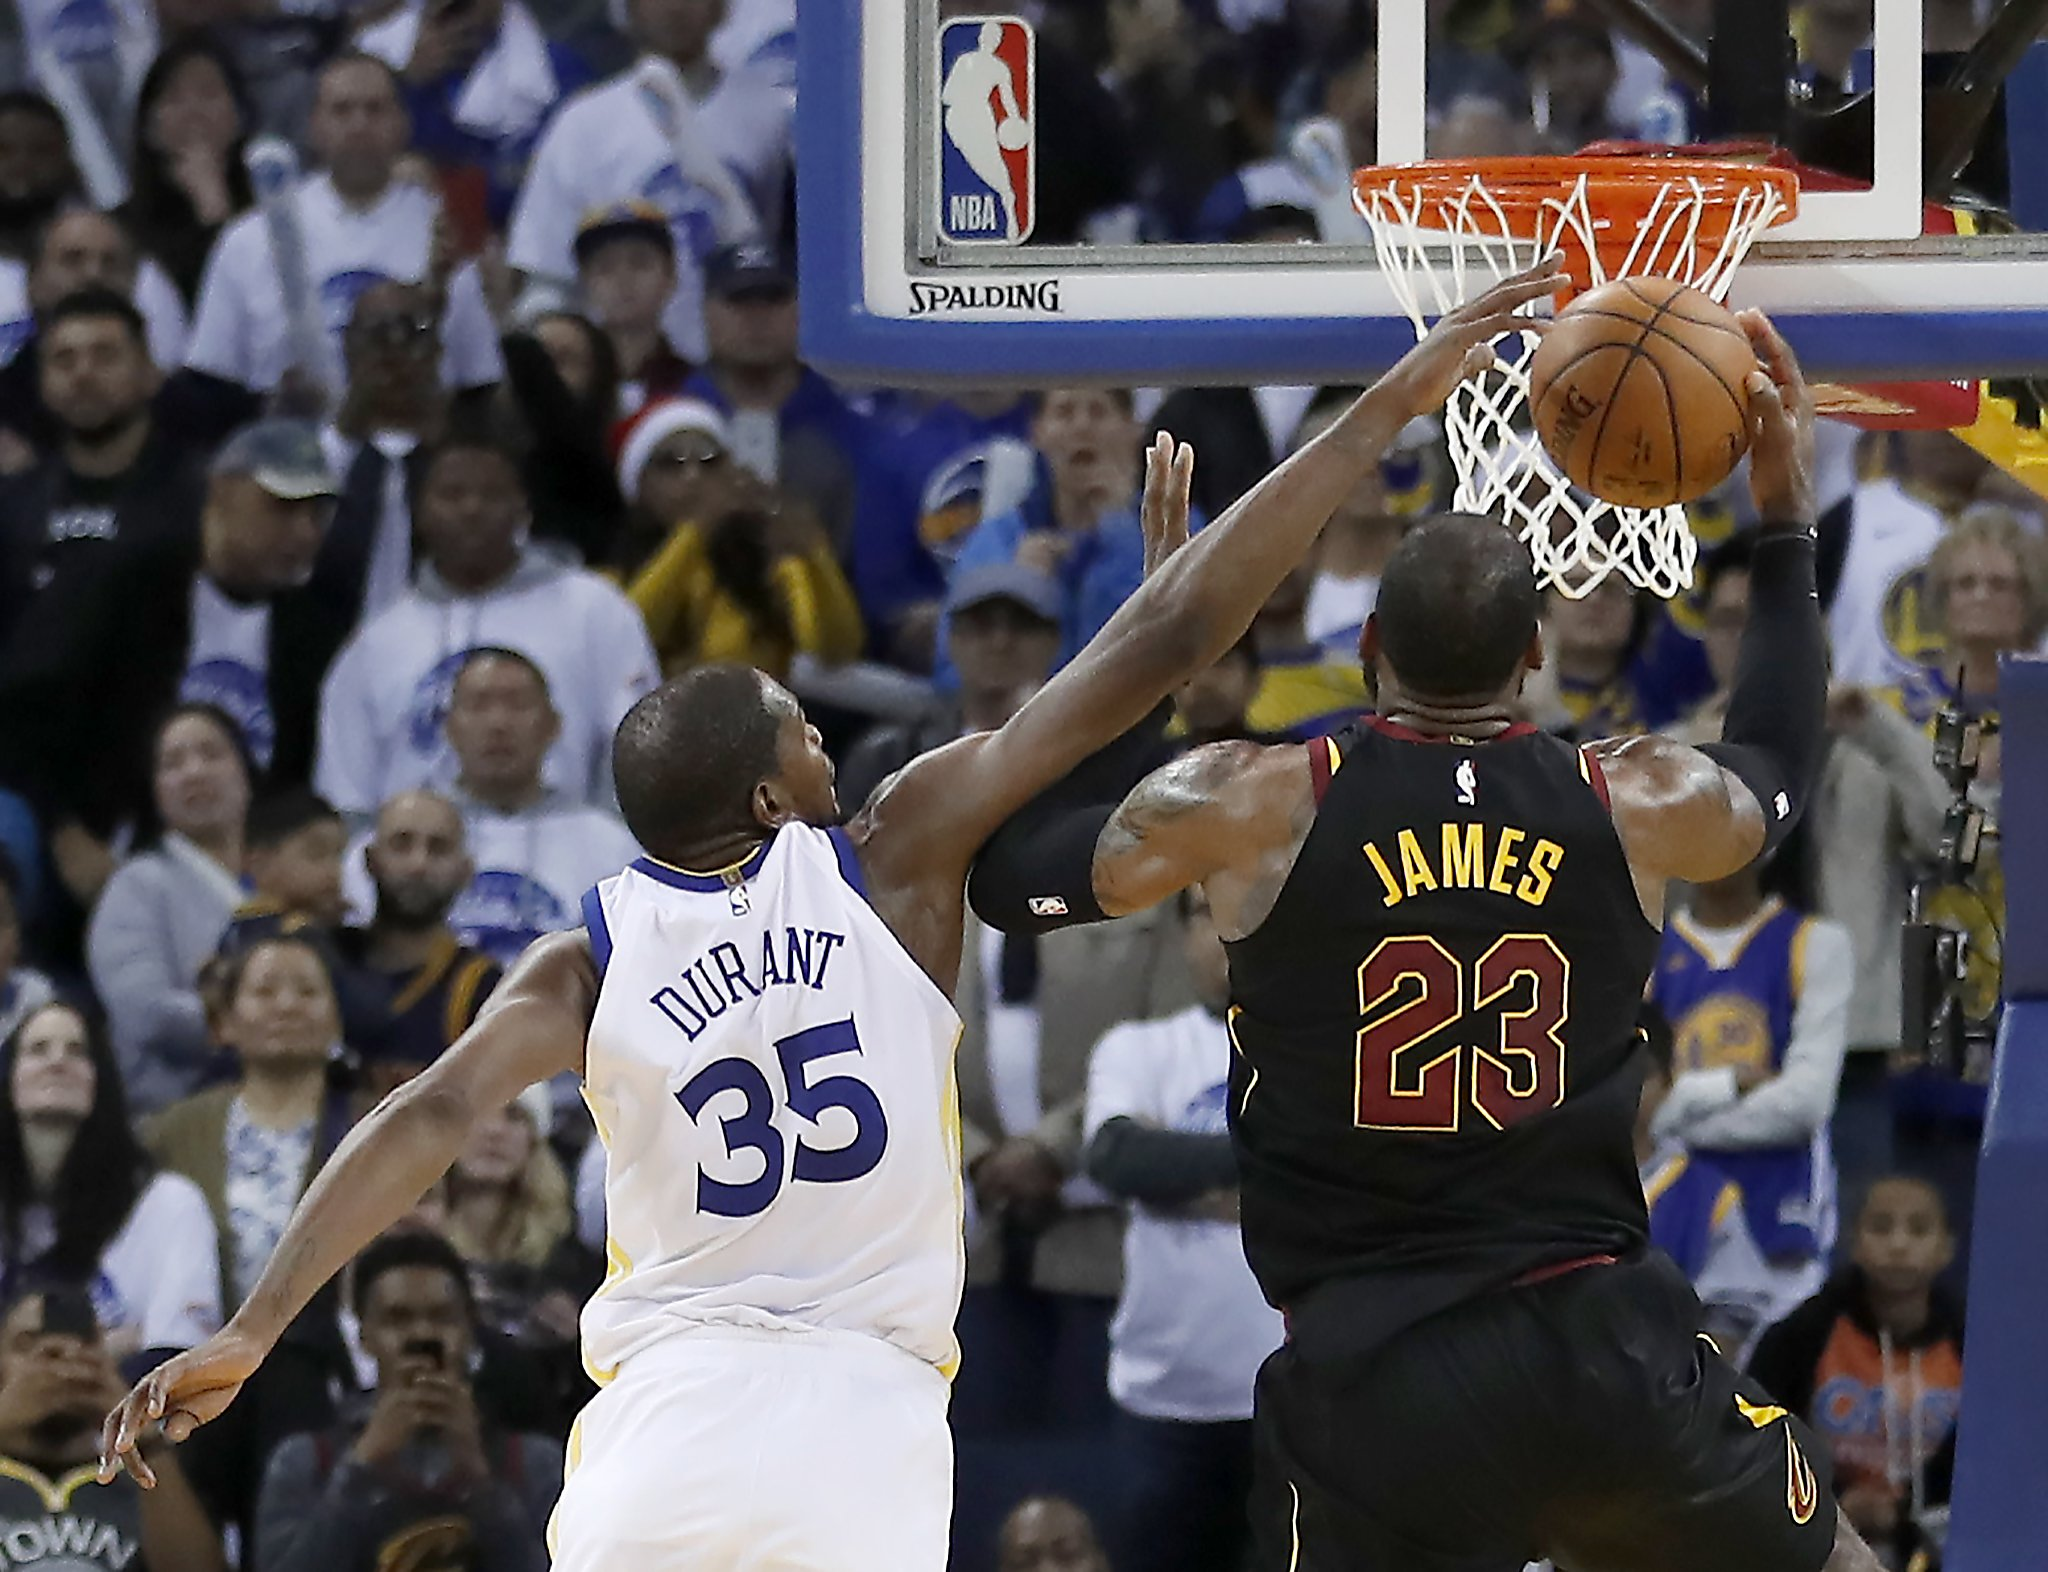 d40d656a4 NBA says it missed 3 late calls on Kevin Durant in Warriors  win over Cavs  - SFChronicle.com